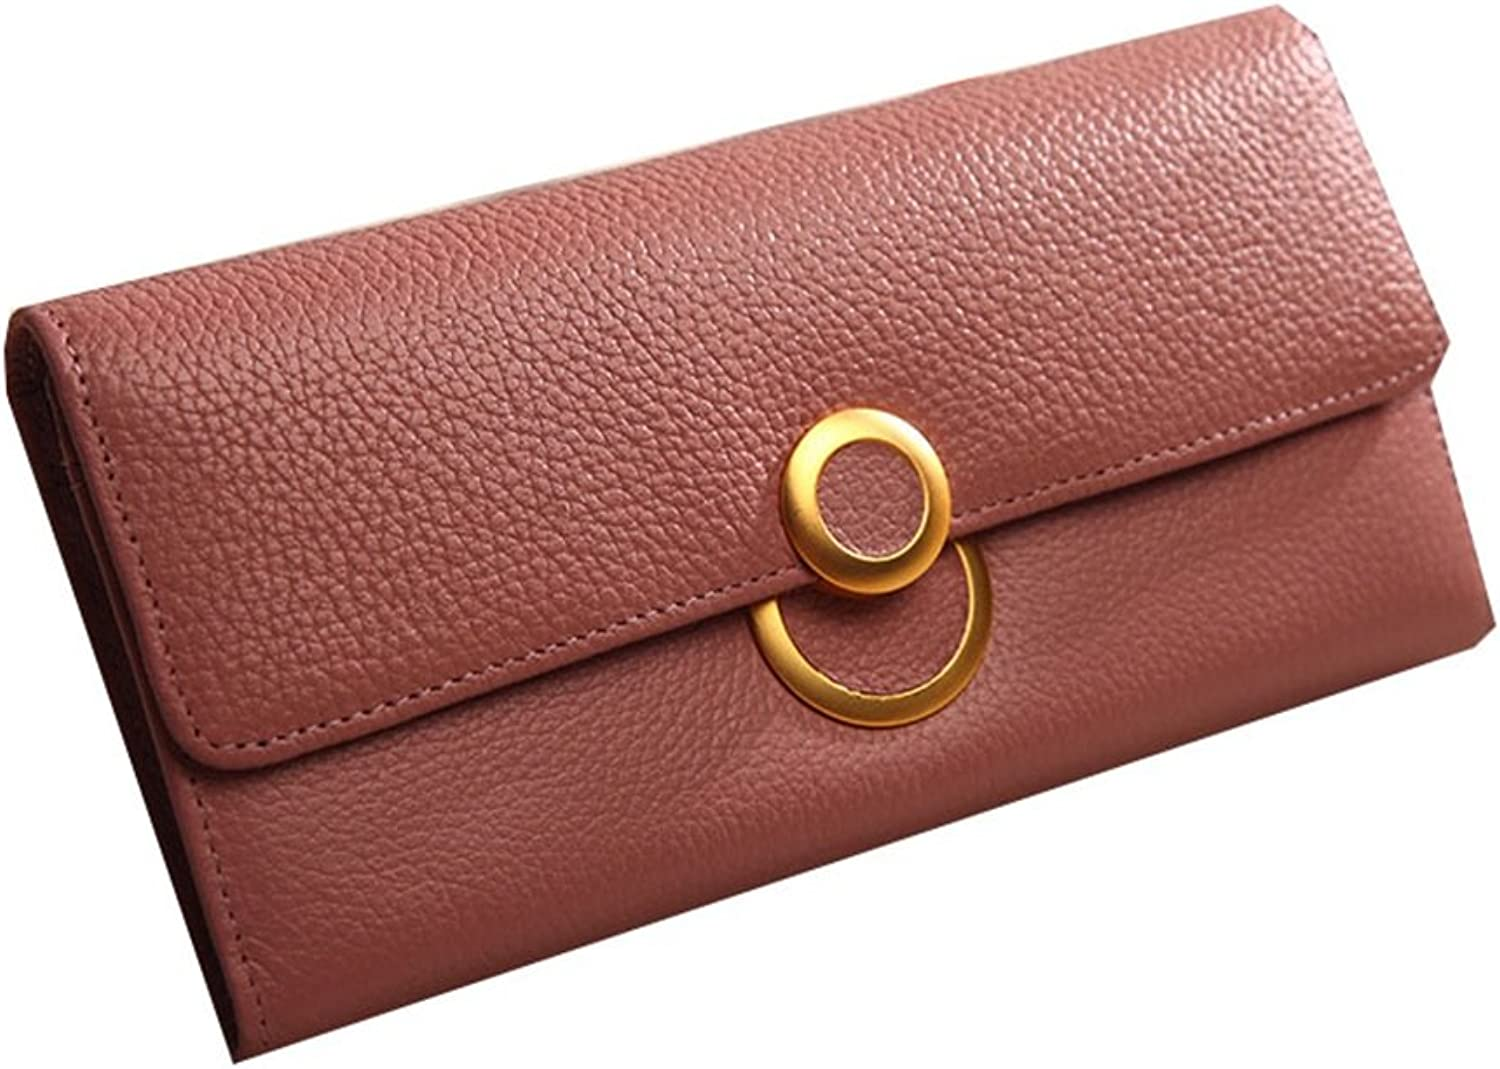 Leather Round Metal Buckles Contracted Both Men and Women Wallet Hand Bag Can Put Mobile Phone Check Package (color   Red)